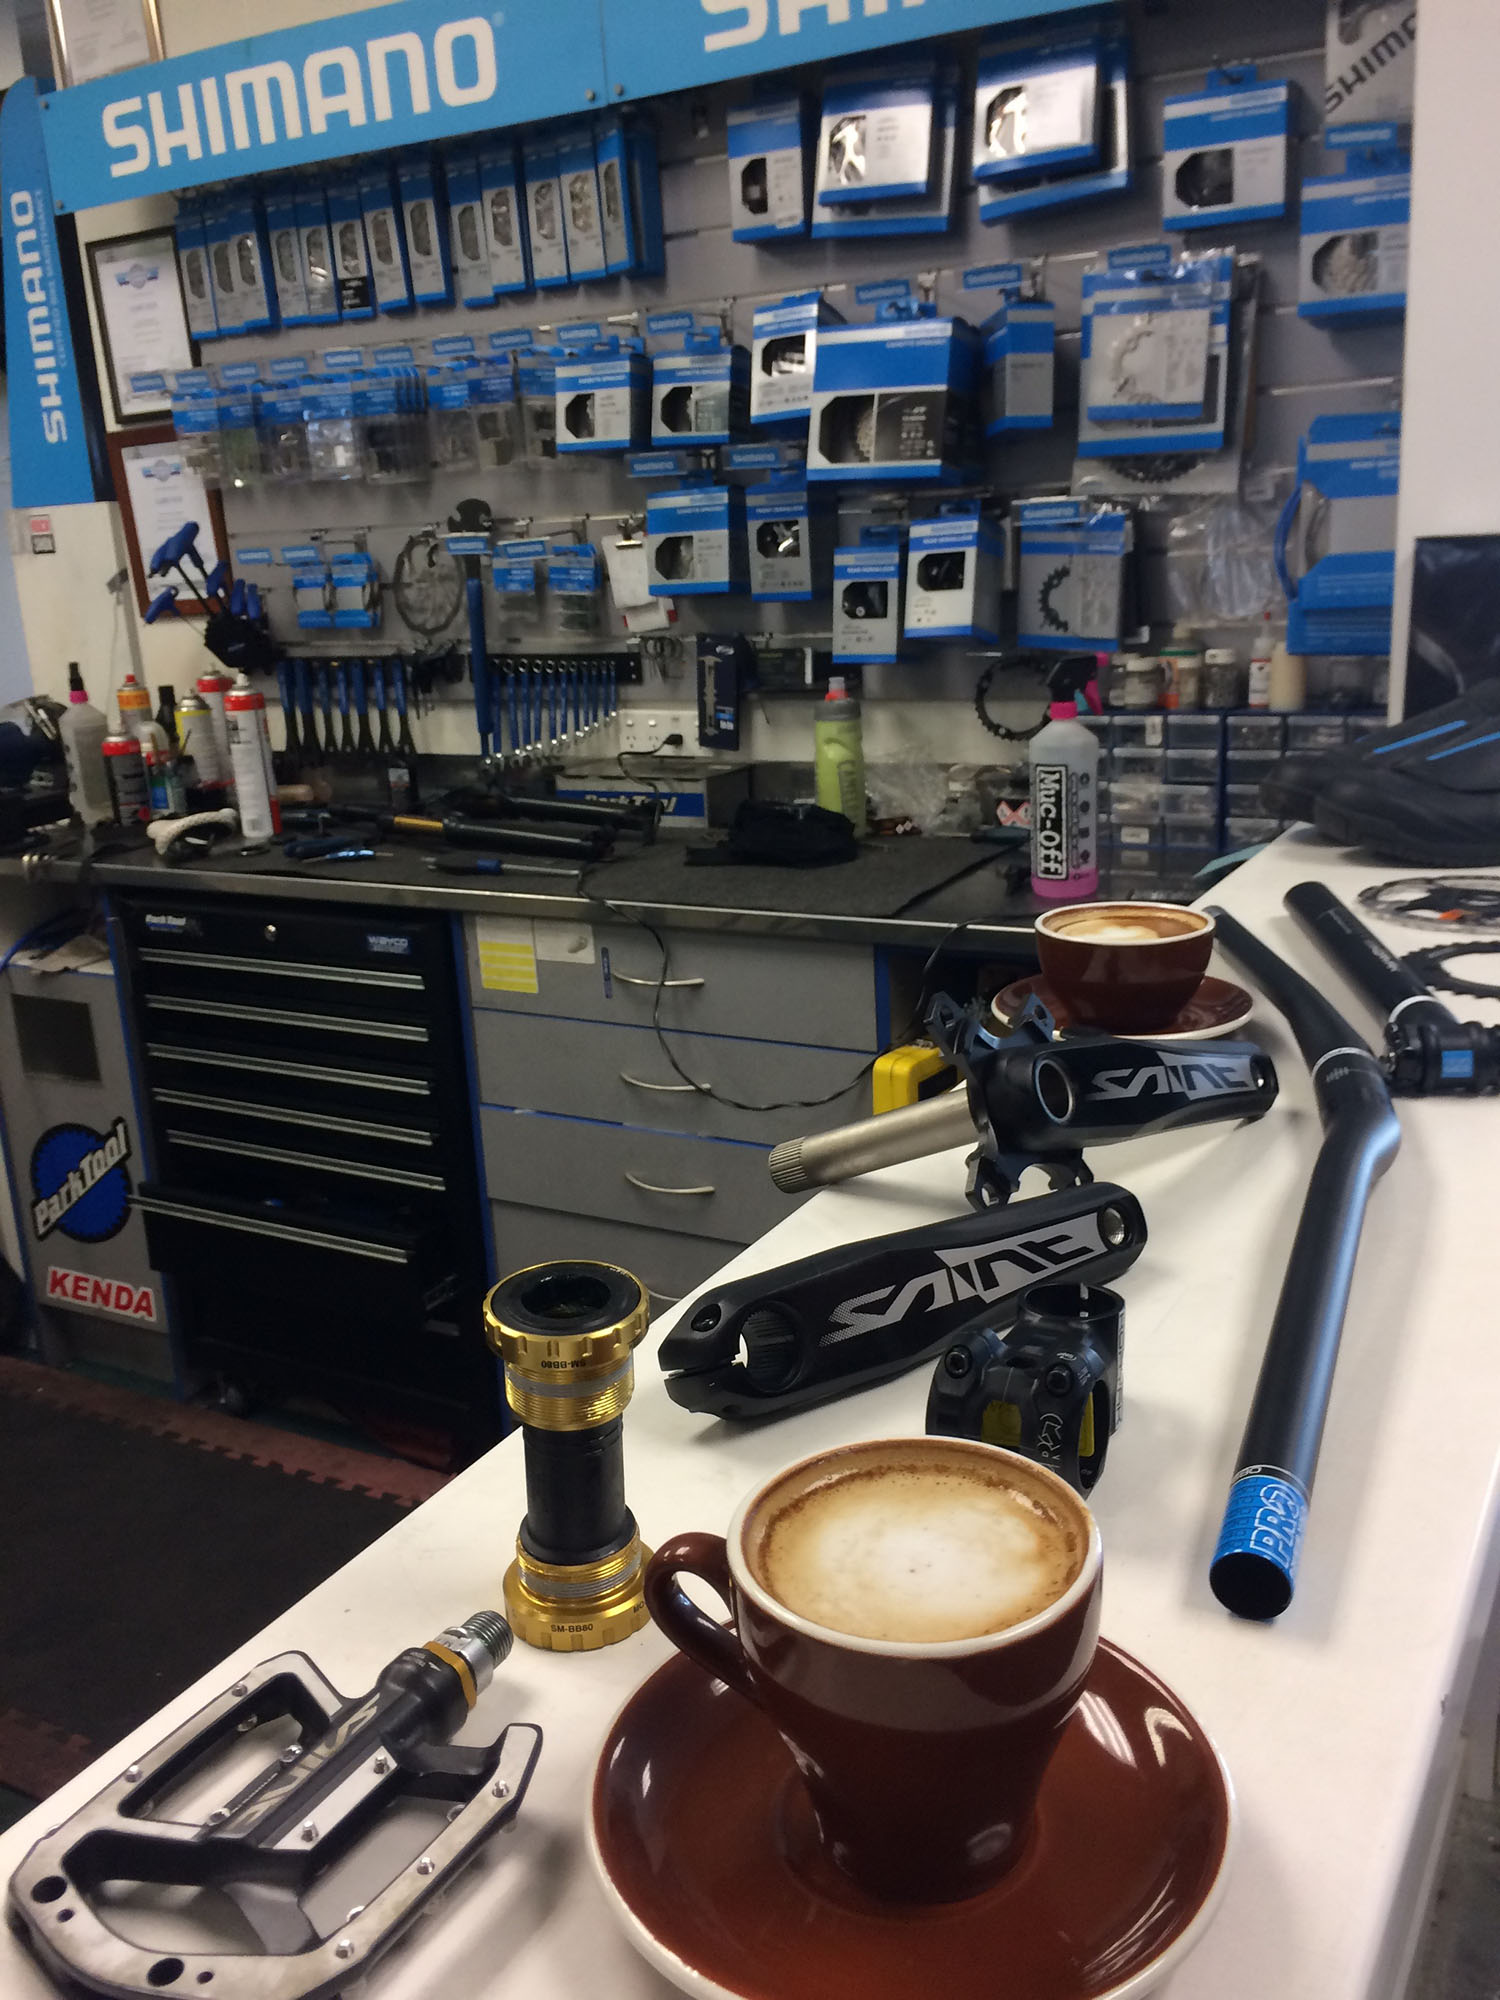 A few coffees to get the crew cranked